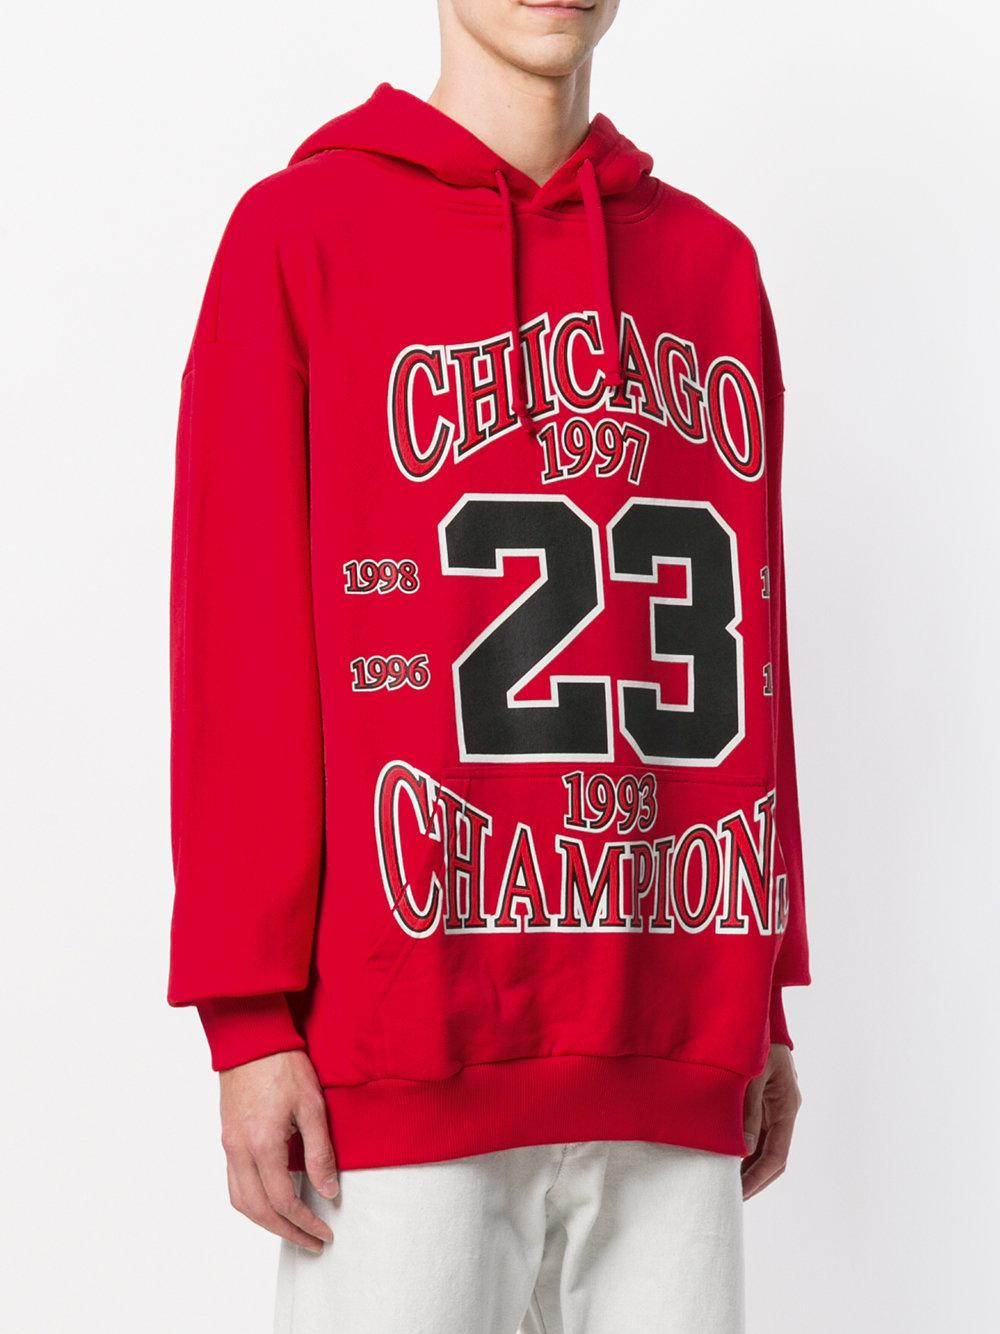 ih nom uh nit Cotton Chicago Bull Championship Hoodie in Red for Men